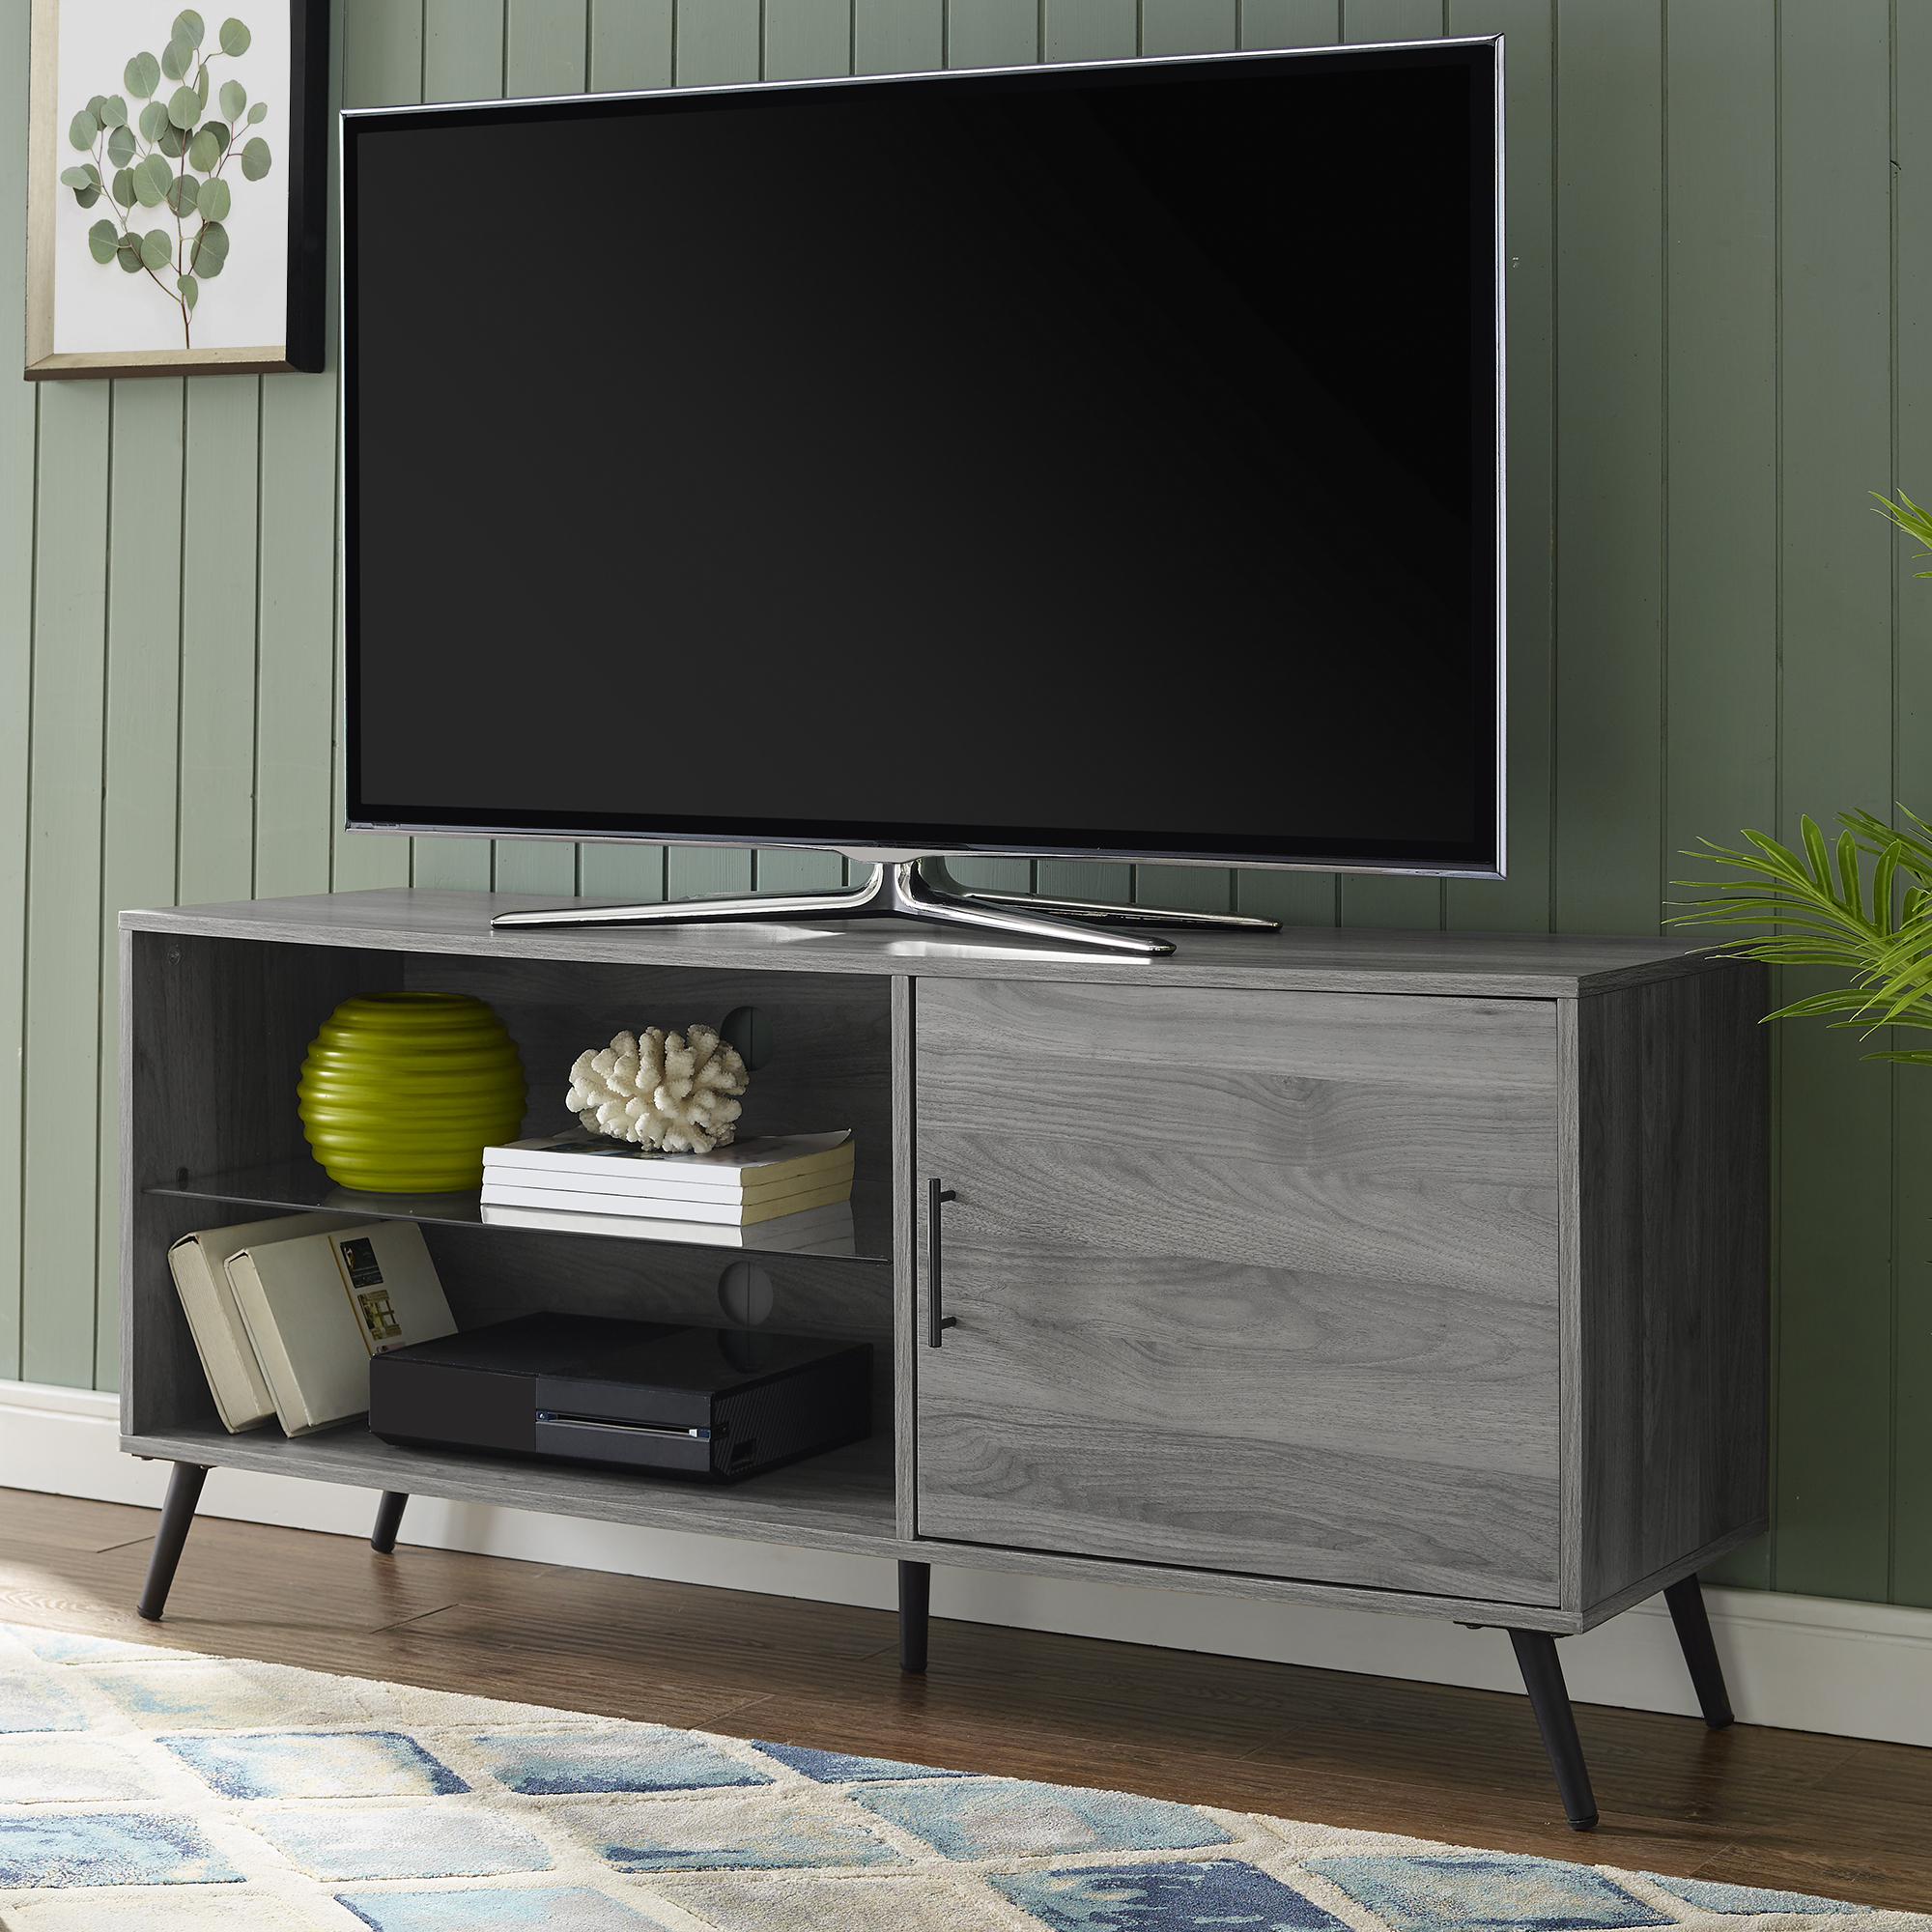 """Most Up To Date Thea Slate Grey Tv Stand For Tvs Up To 58""""bellamy Intended For Labarbera Tv Stands For Tvs Up To 58"""" (View 5 of 20)"""